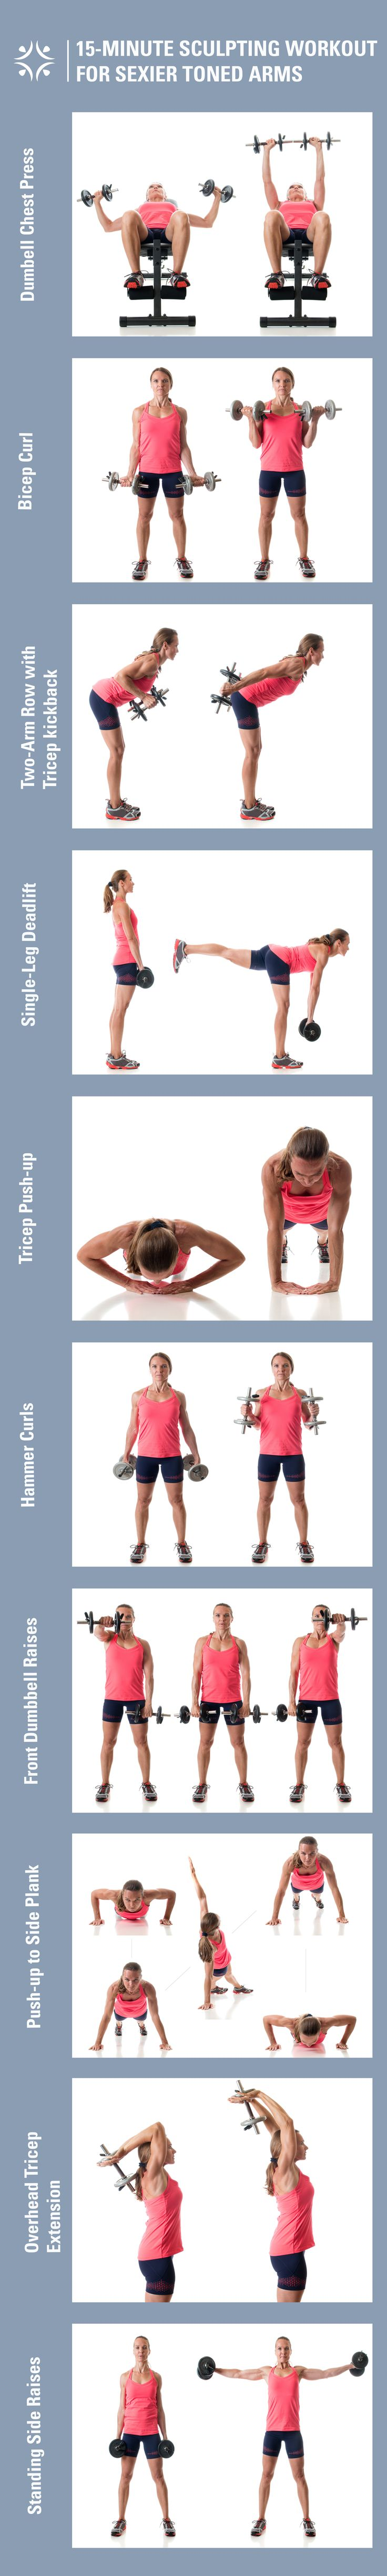 15-minute workout for sexier sculpted arms.